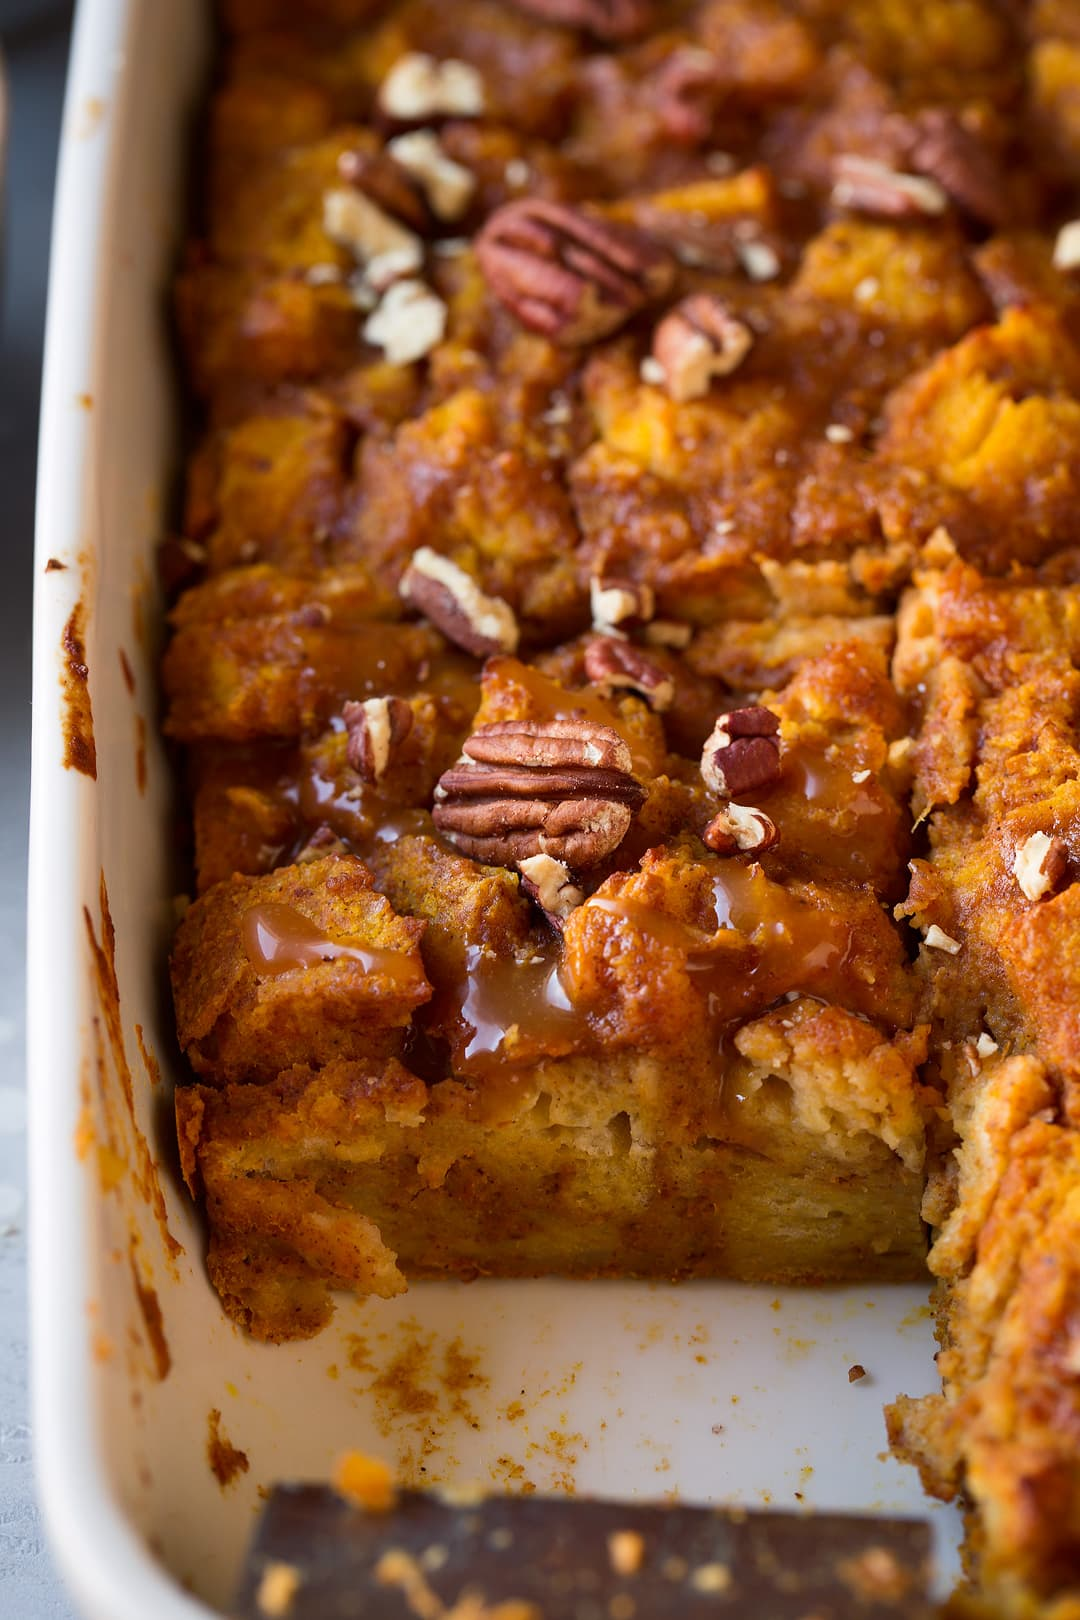 Bread Pudding in baking dish with pumpkin, spices, caramel sauce and pecans.